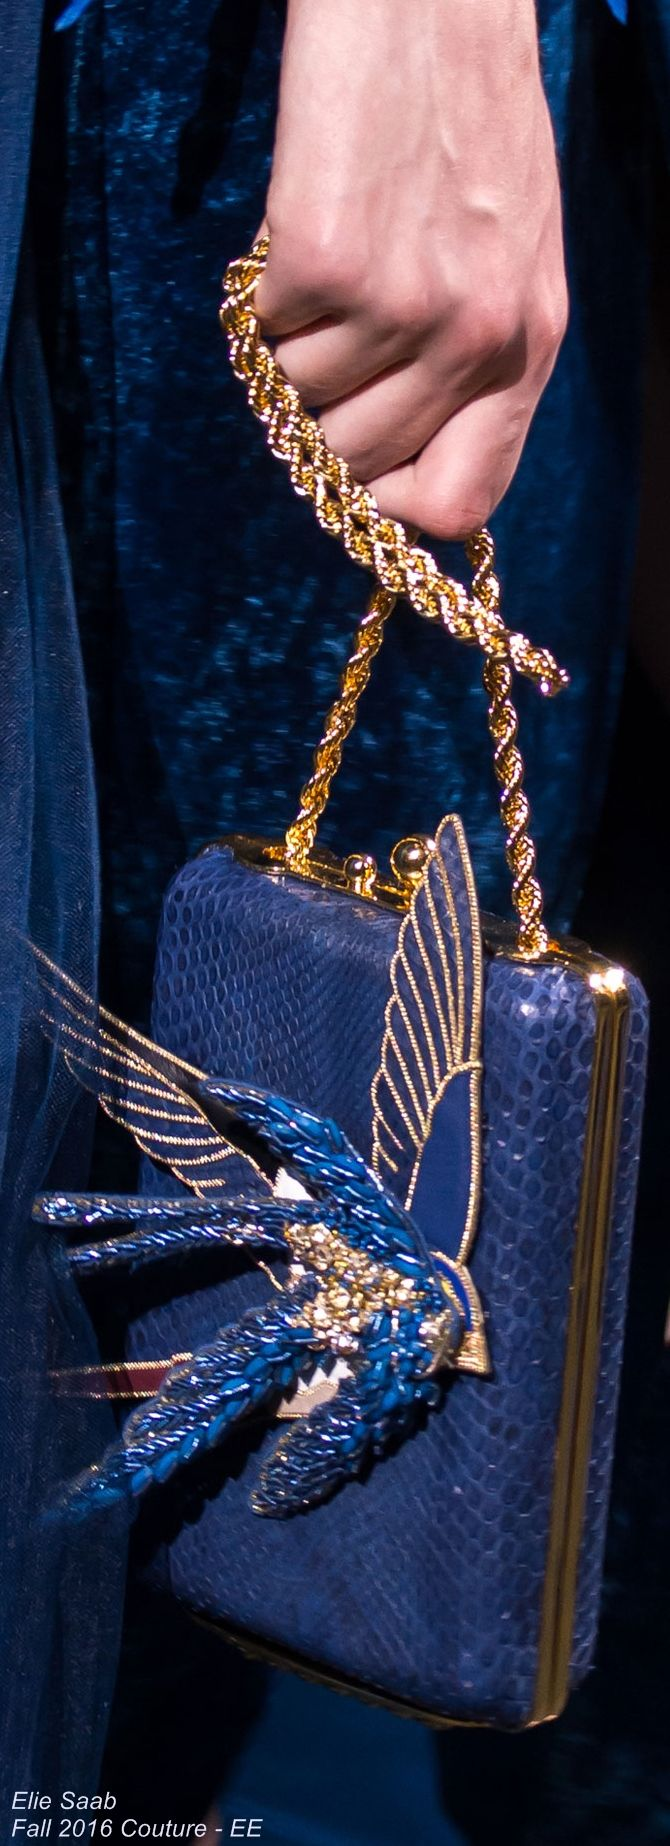 Elie Saab Fall 2016 Couture - EE handbags wallets - http://amzn.to/2jDeisA